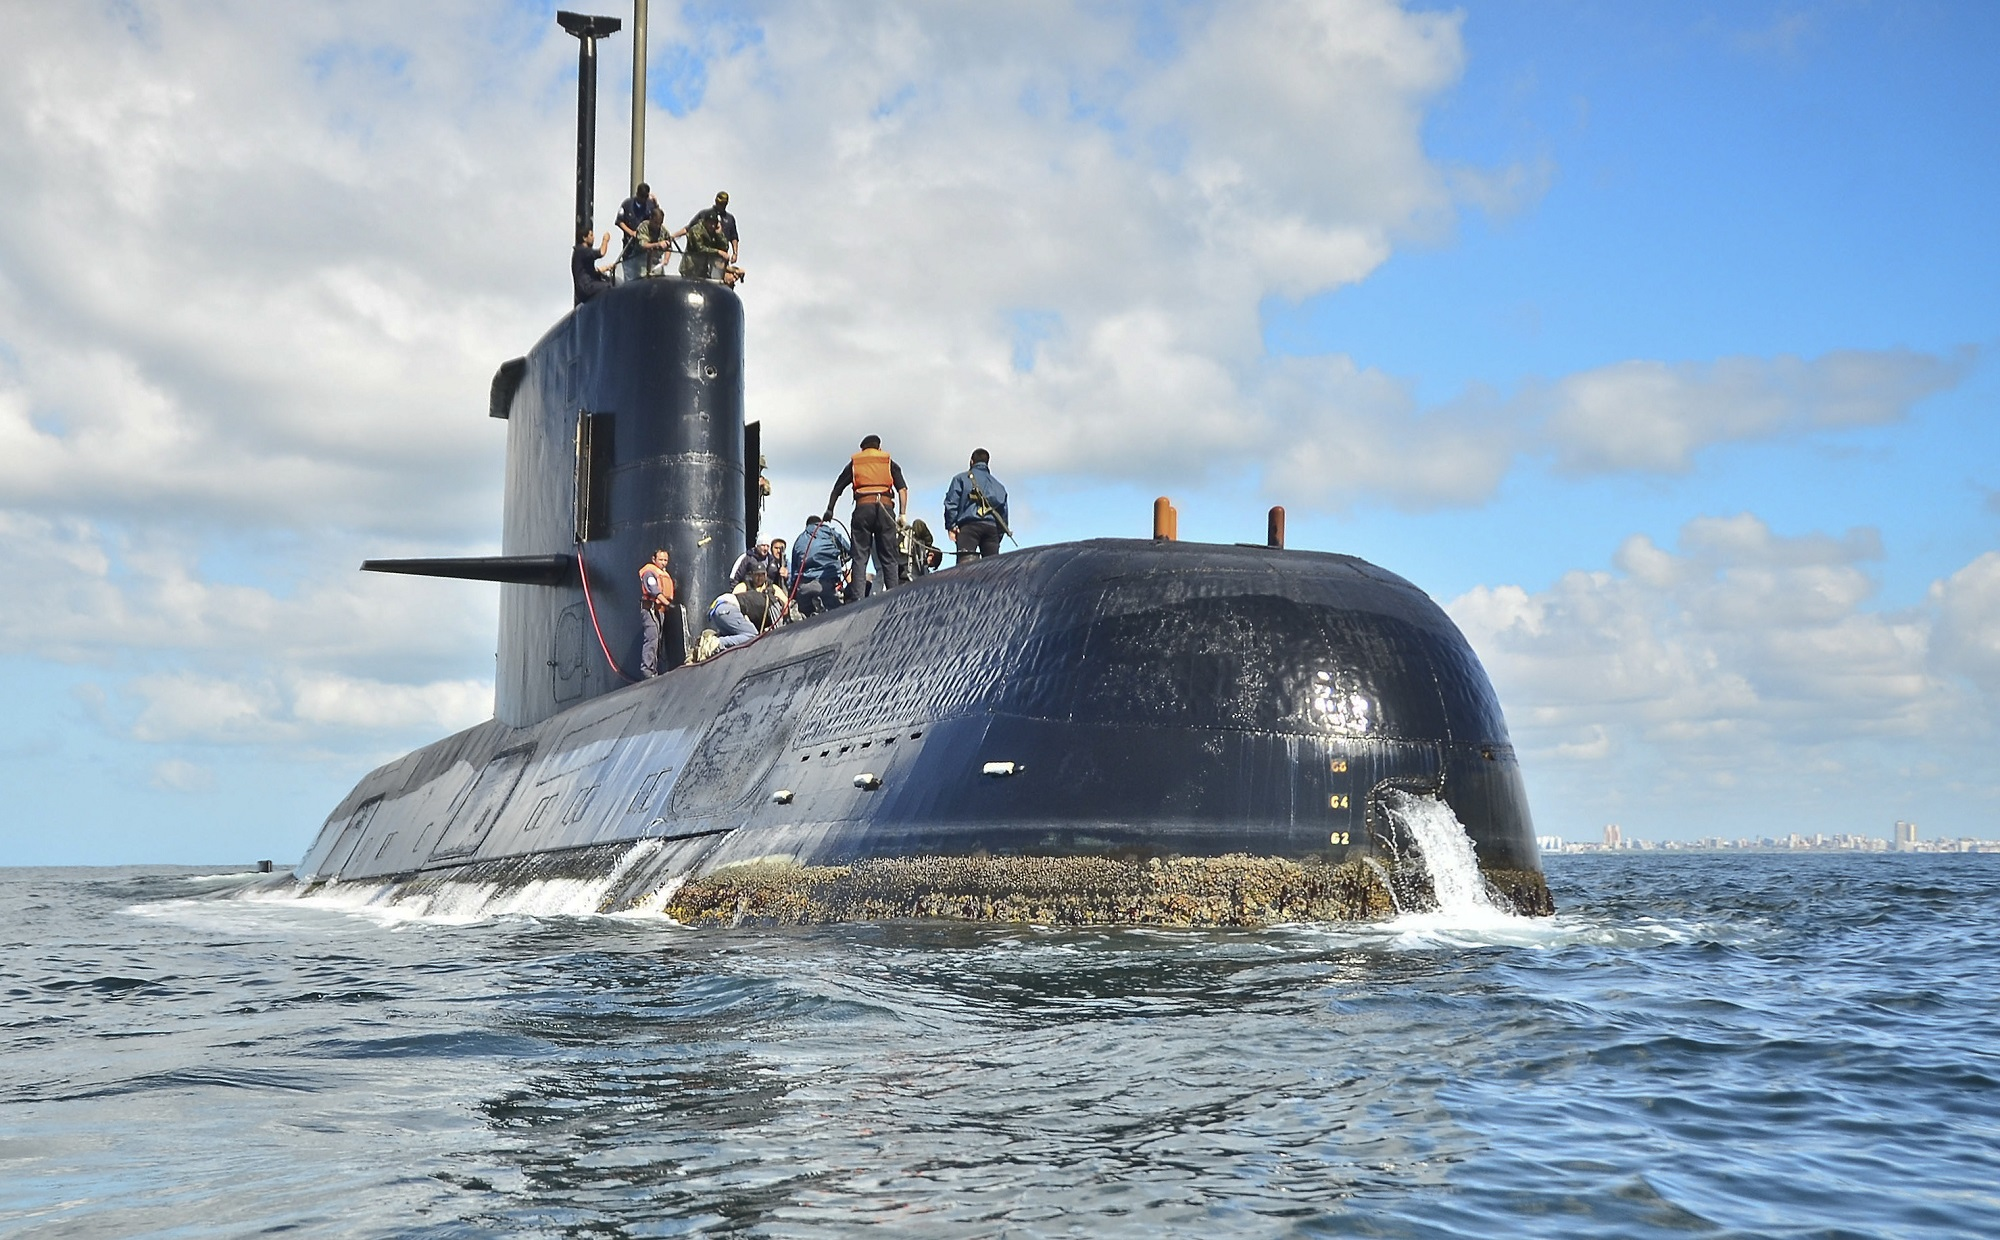 Argentine Navy loses contact with submarine carrying 44